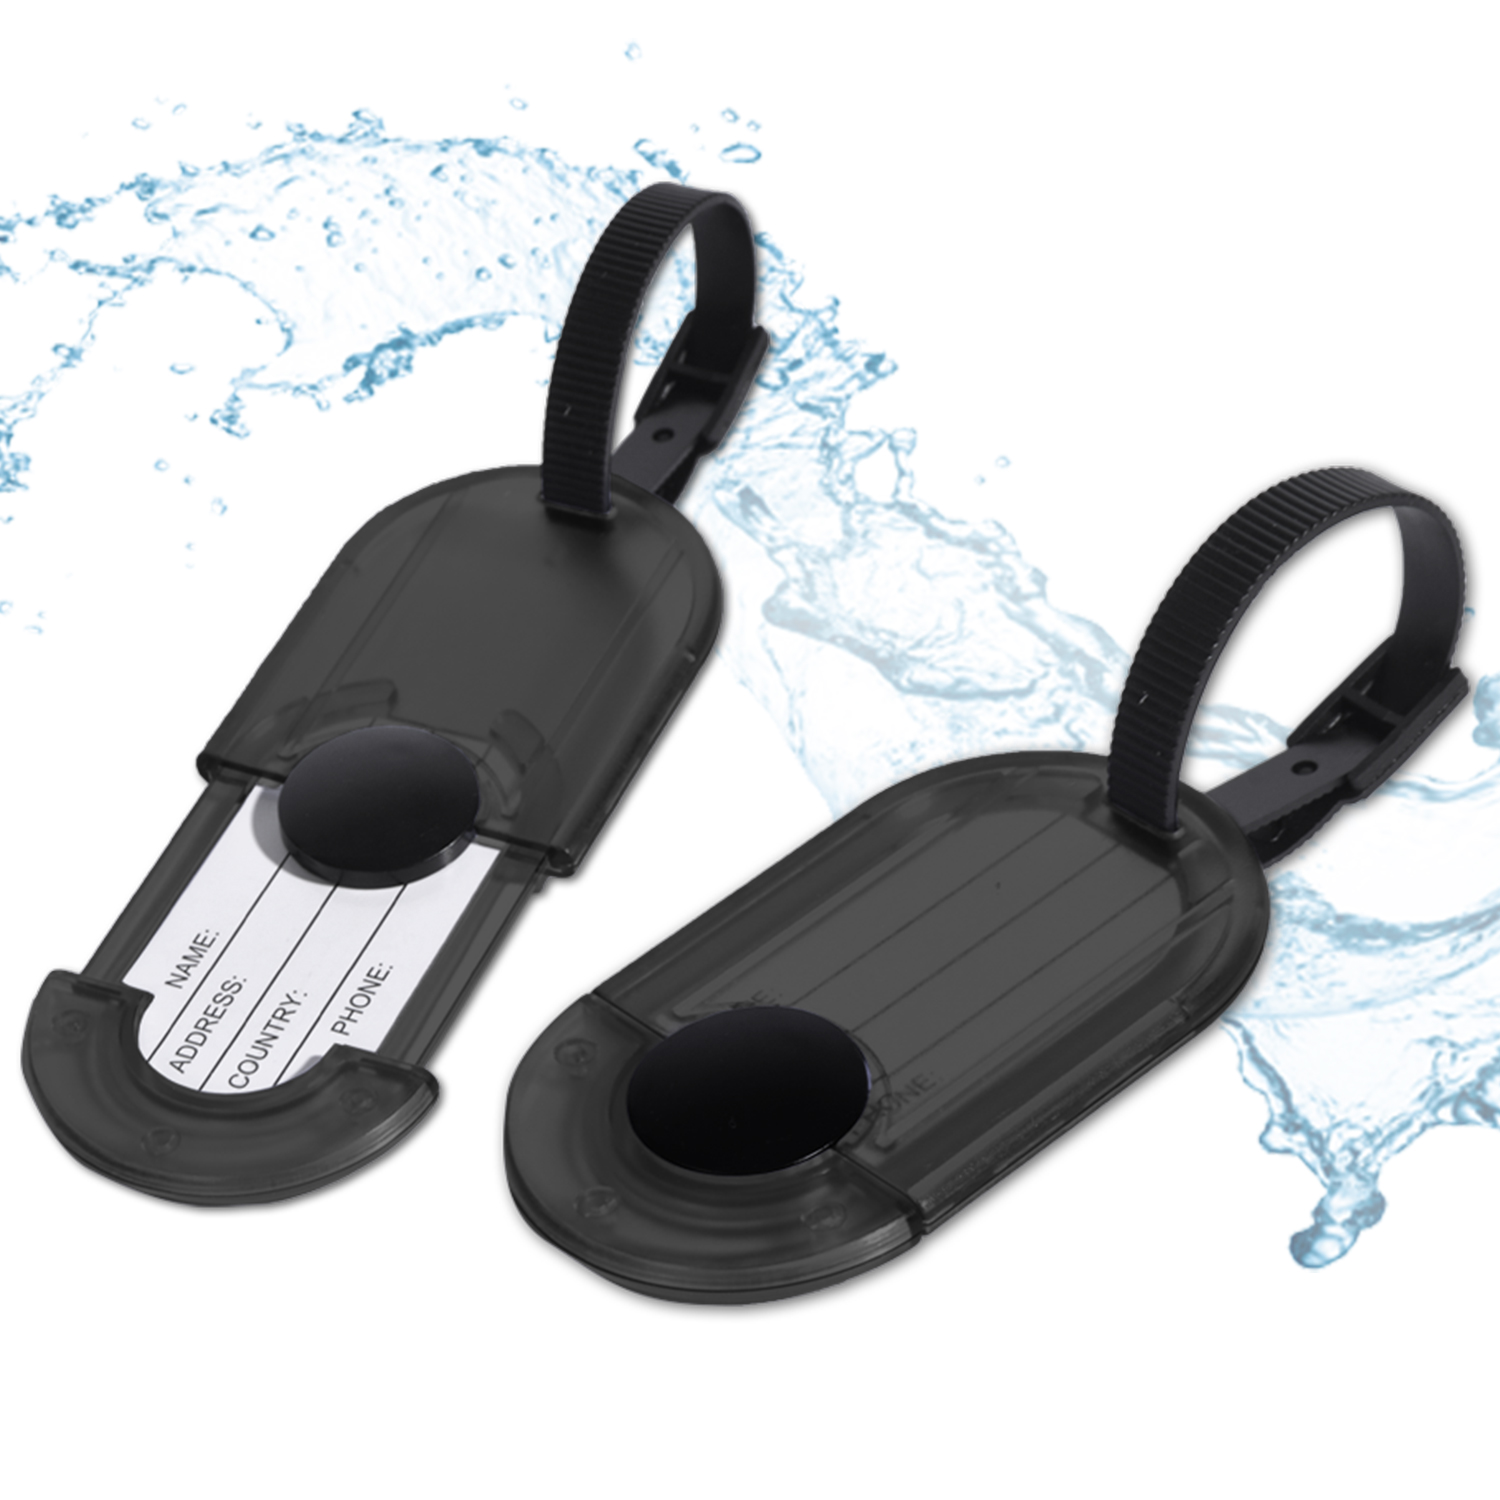 Miami CarryOn - Luggage Tags Holder - Travel ID Bag Water Resistant Tags - Set of 2 (Black)